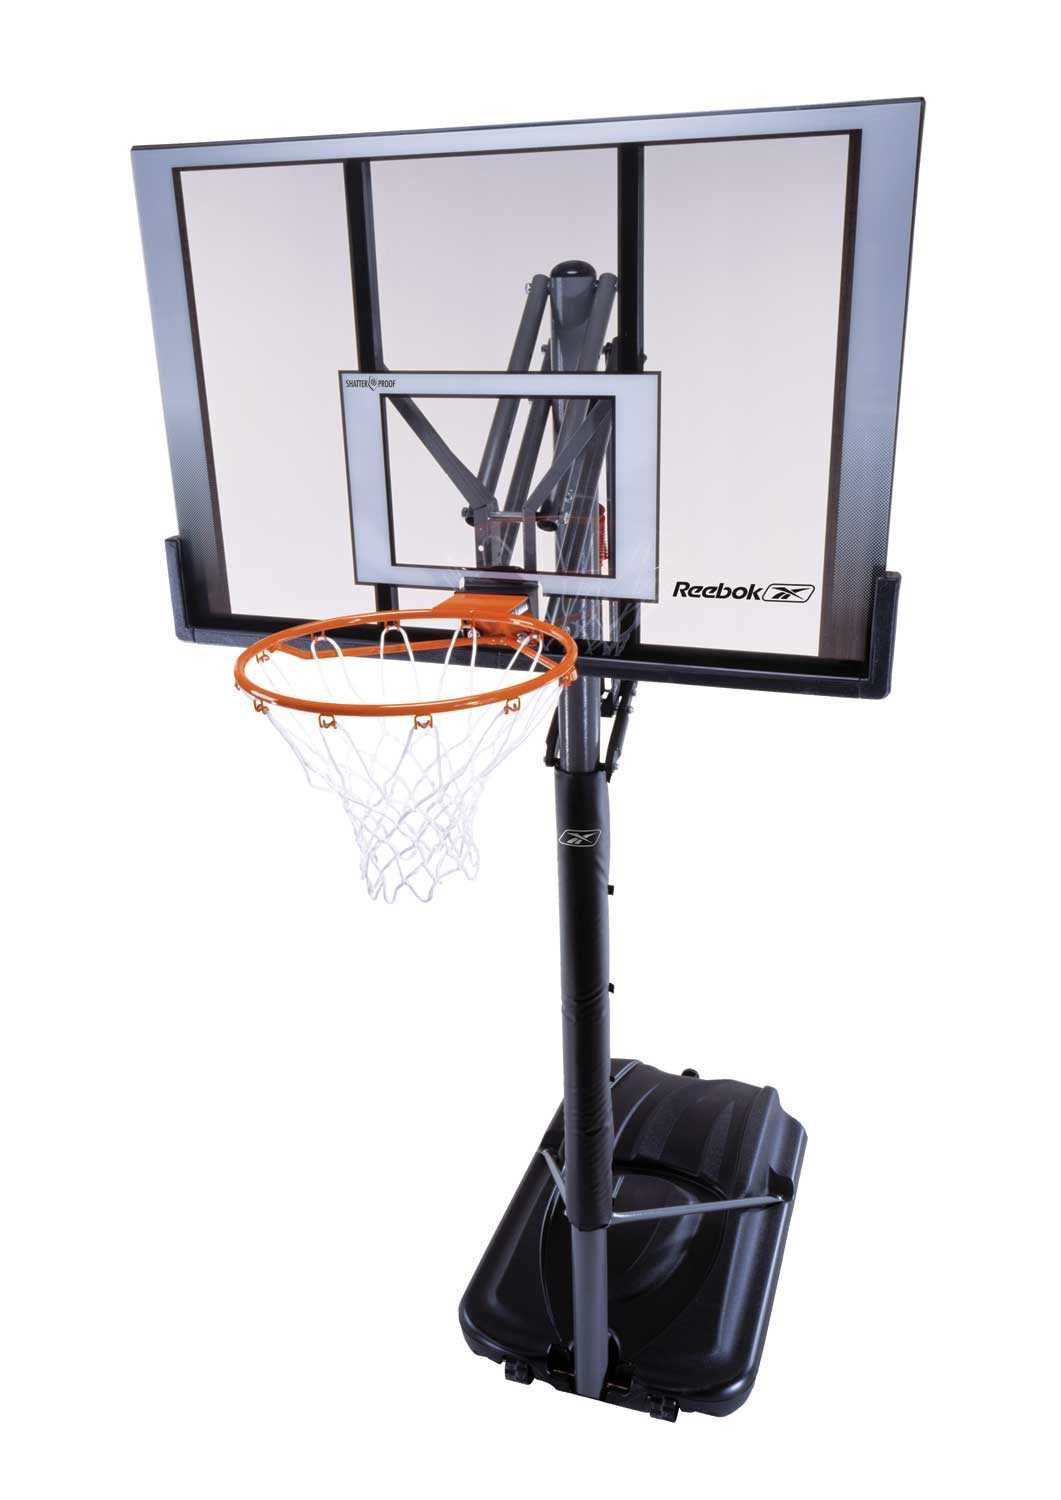 51564 Lifetime Portable Basketball System Reebok Features A 52 X 33 X 1 Steel Framed Shatter Proof Backb Pool Basketball Basketball Goals Swimming Pools